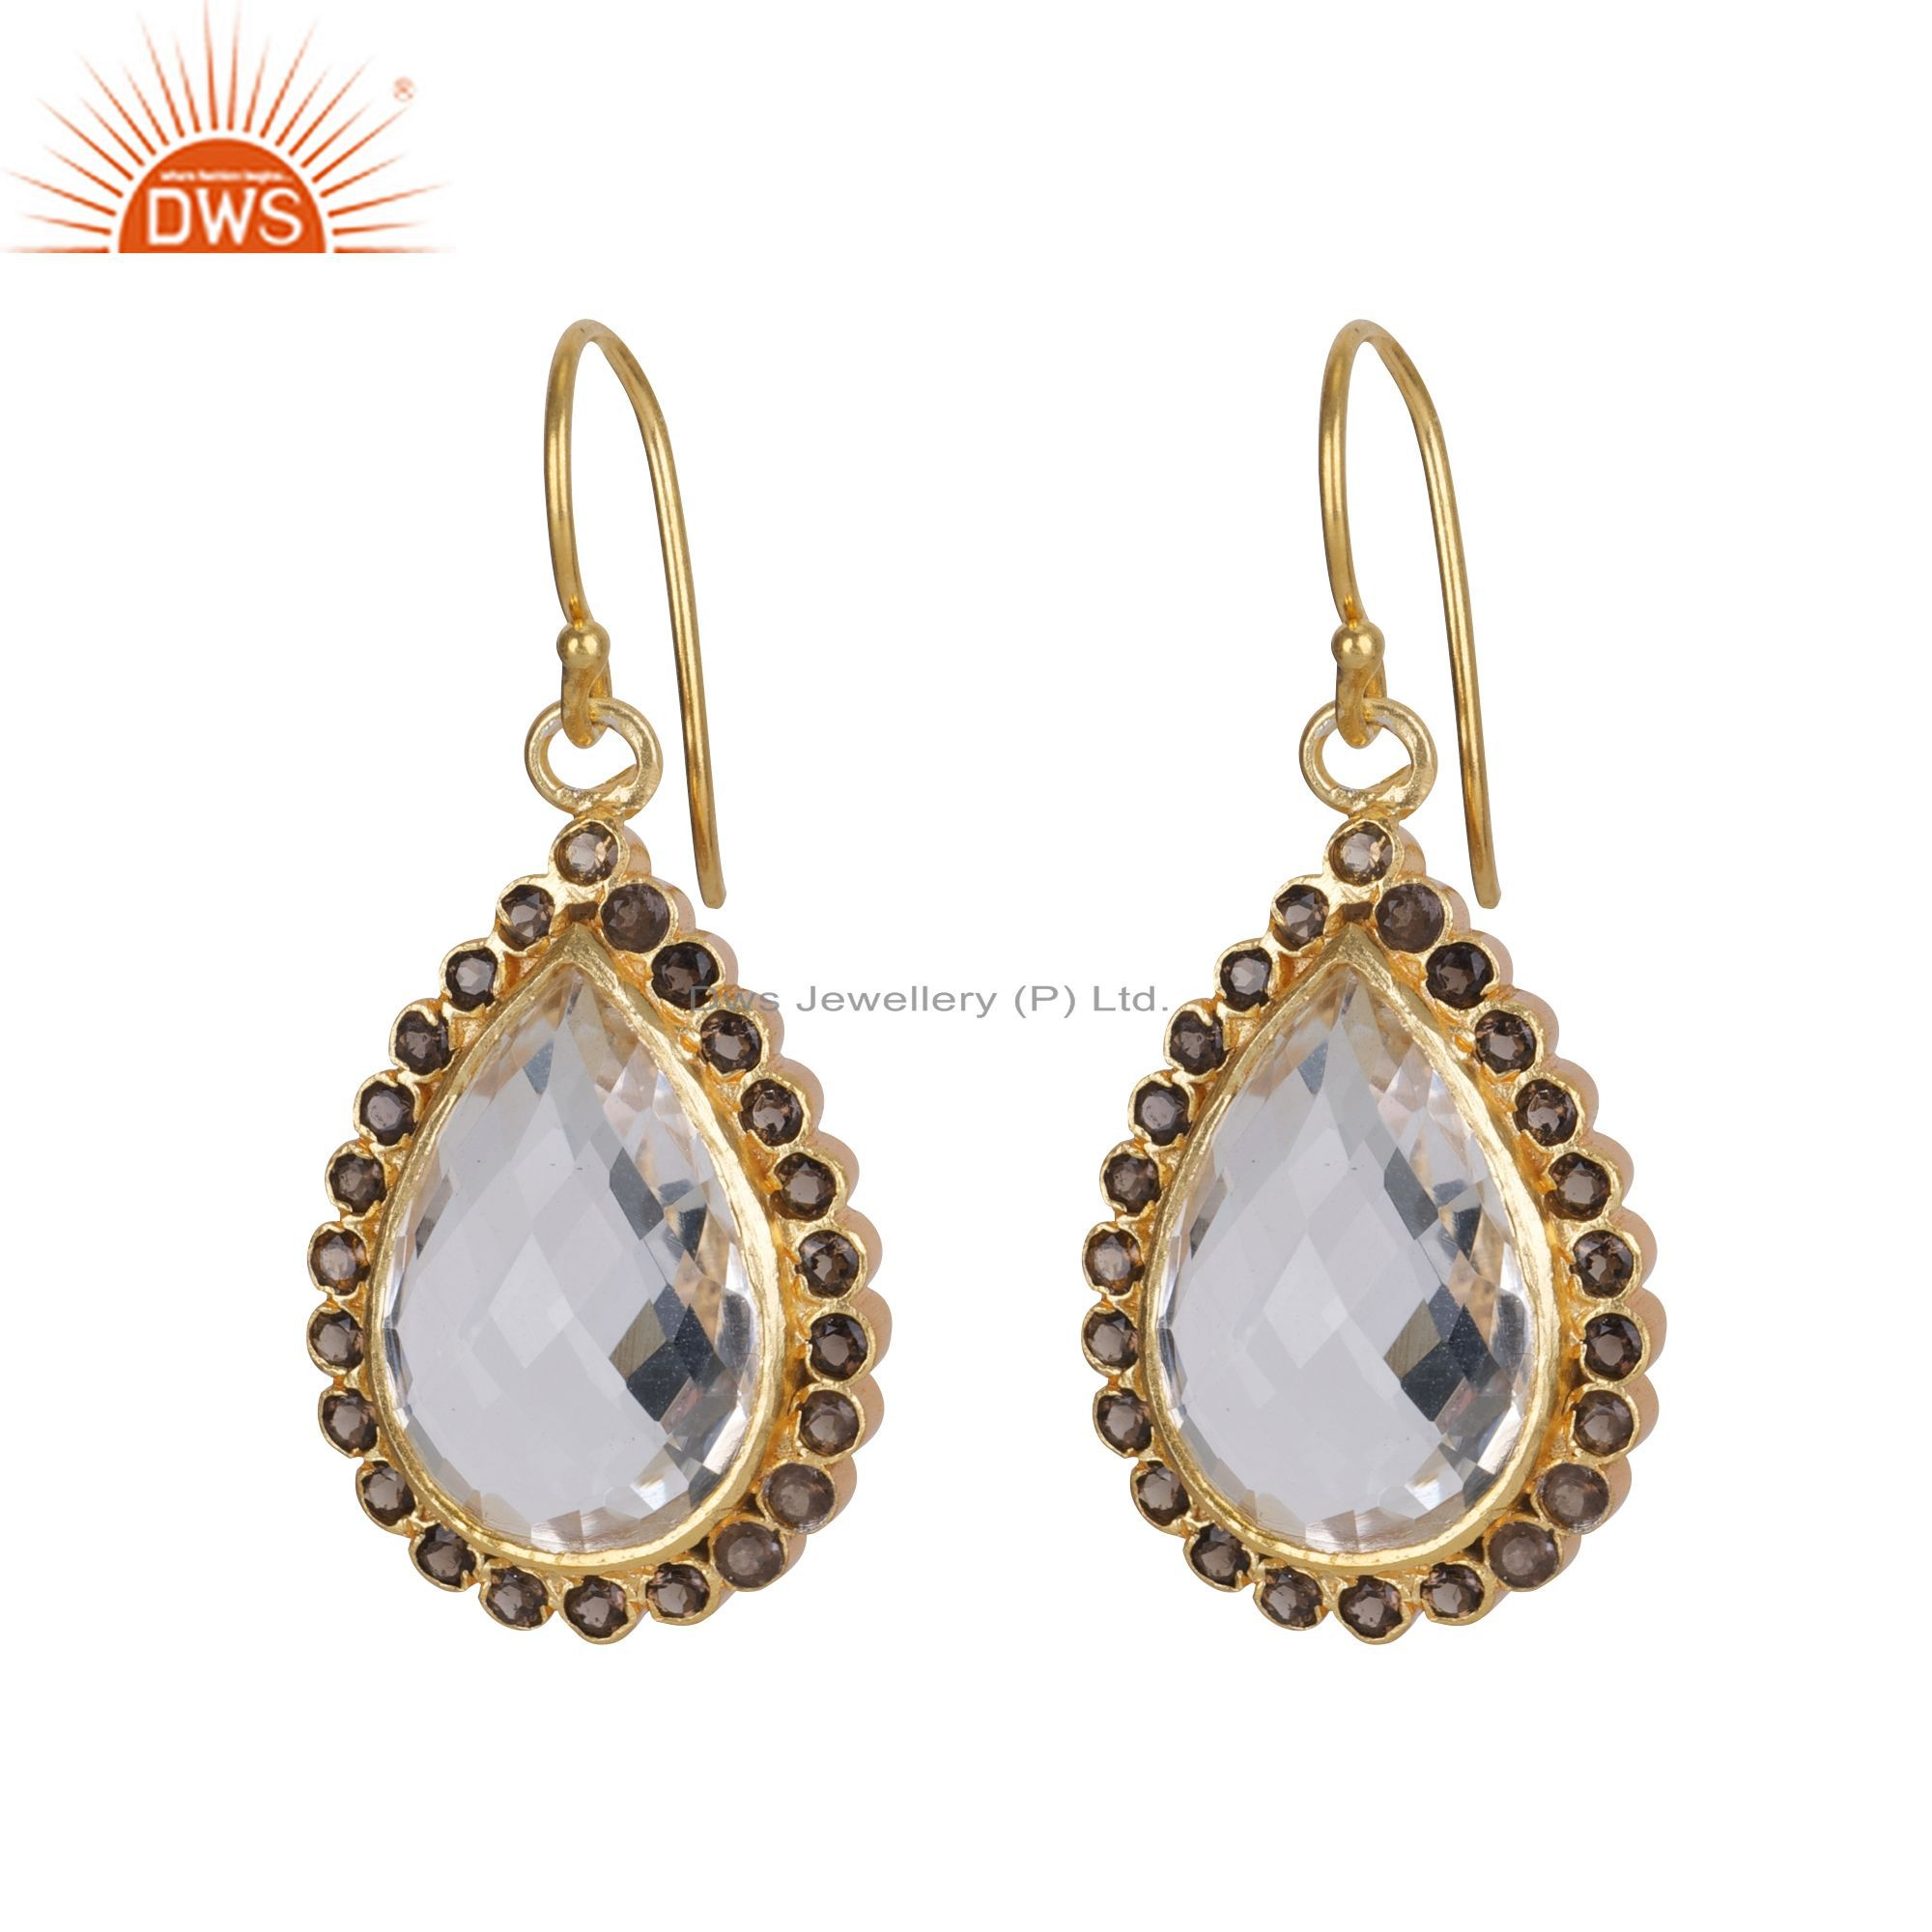 18K Gold Plated Sterling Silver Crystal Quartz And Smoky Quartz Drop Earrings